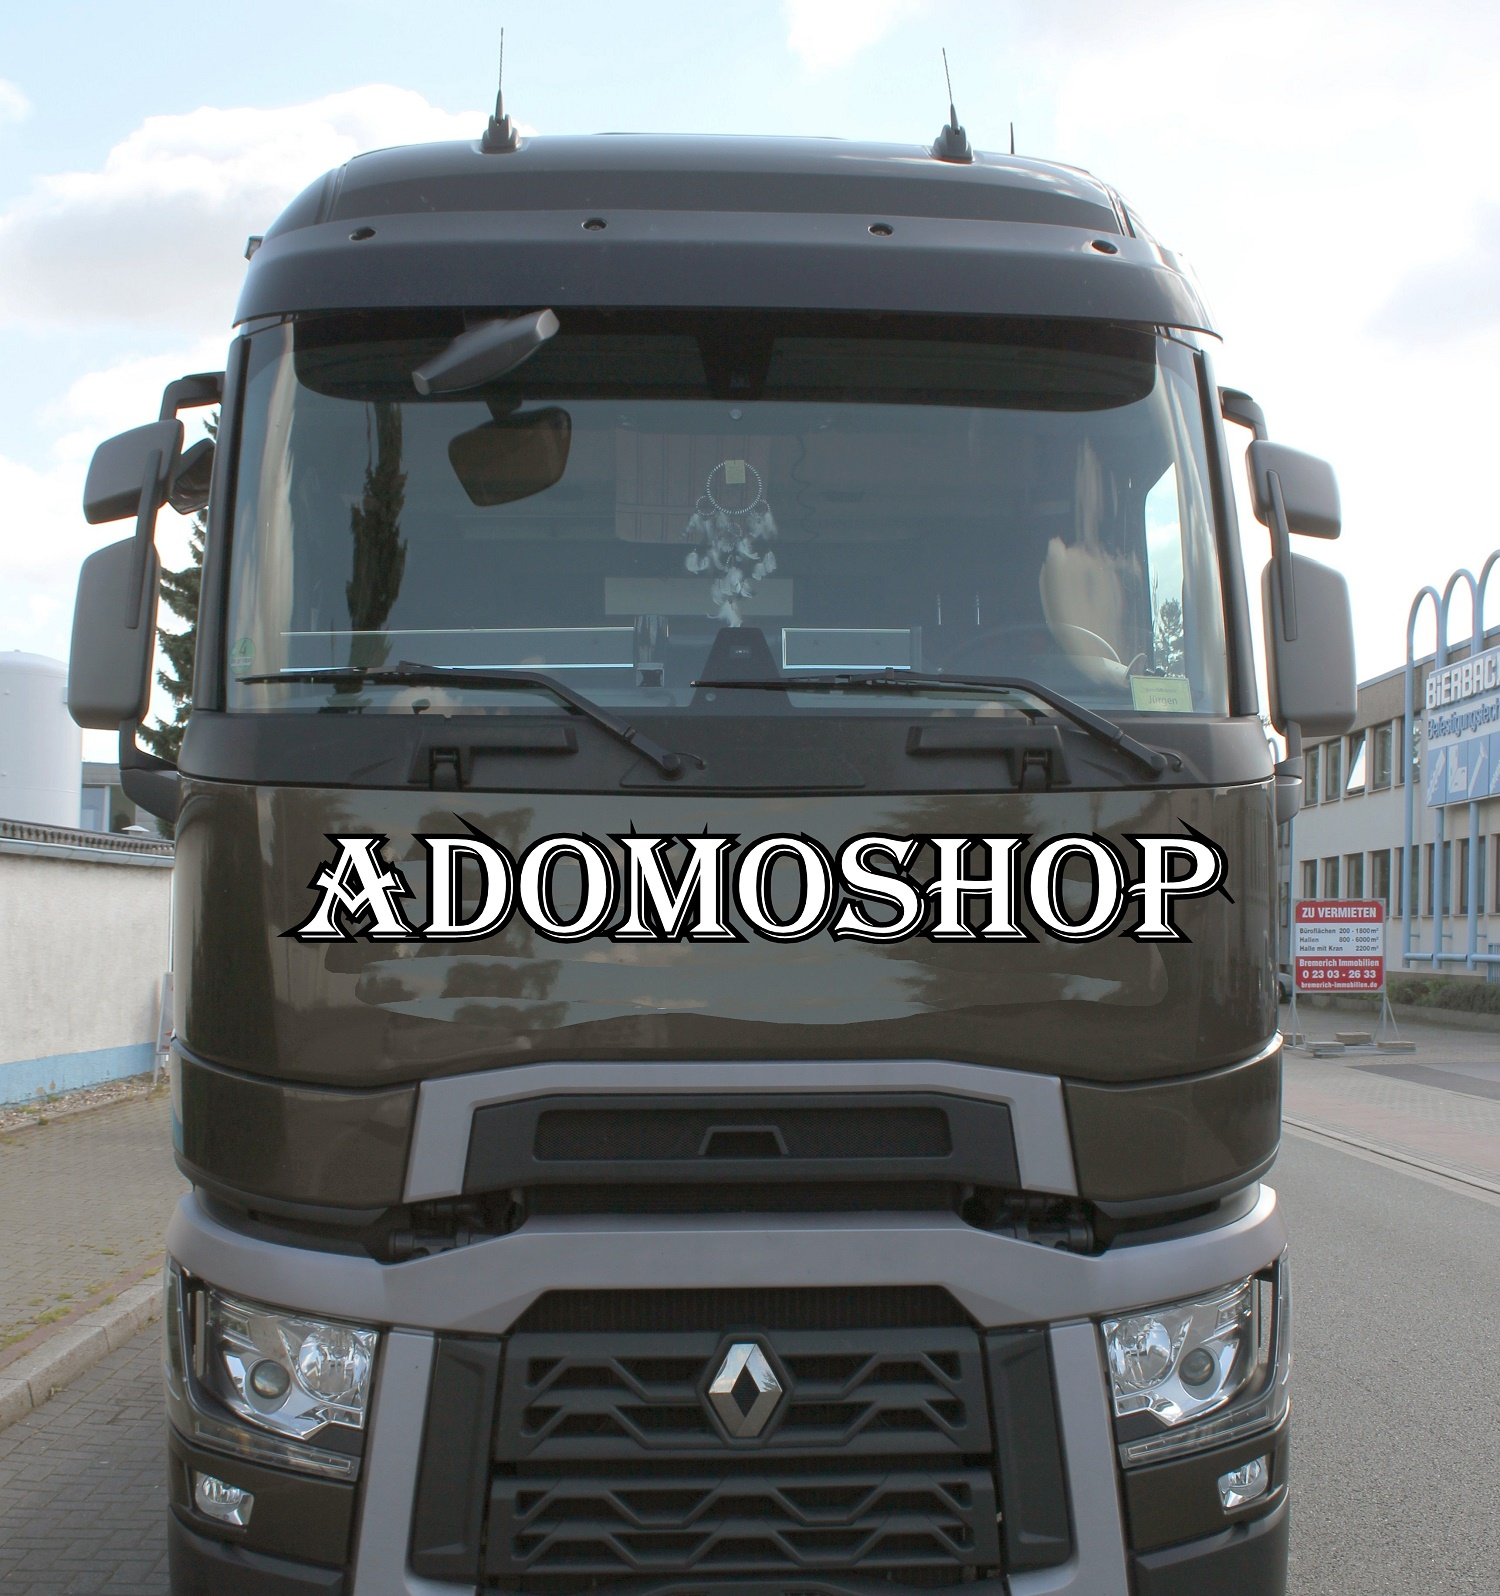 adomo lkw shop lkw ablagetisch f r renault t ab 2014 mit. Black Bedroom Furniture Sets. Home Design Ideas